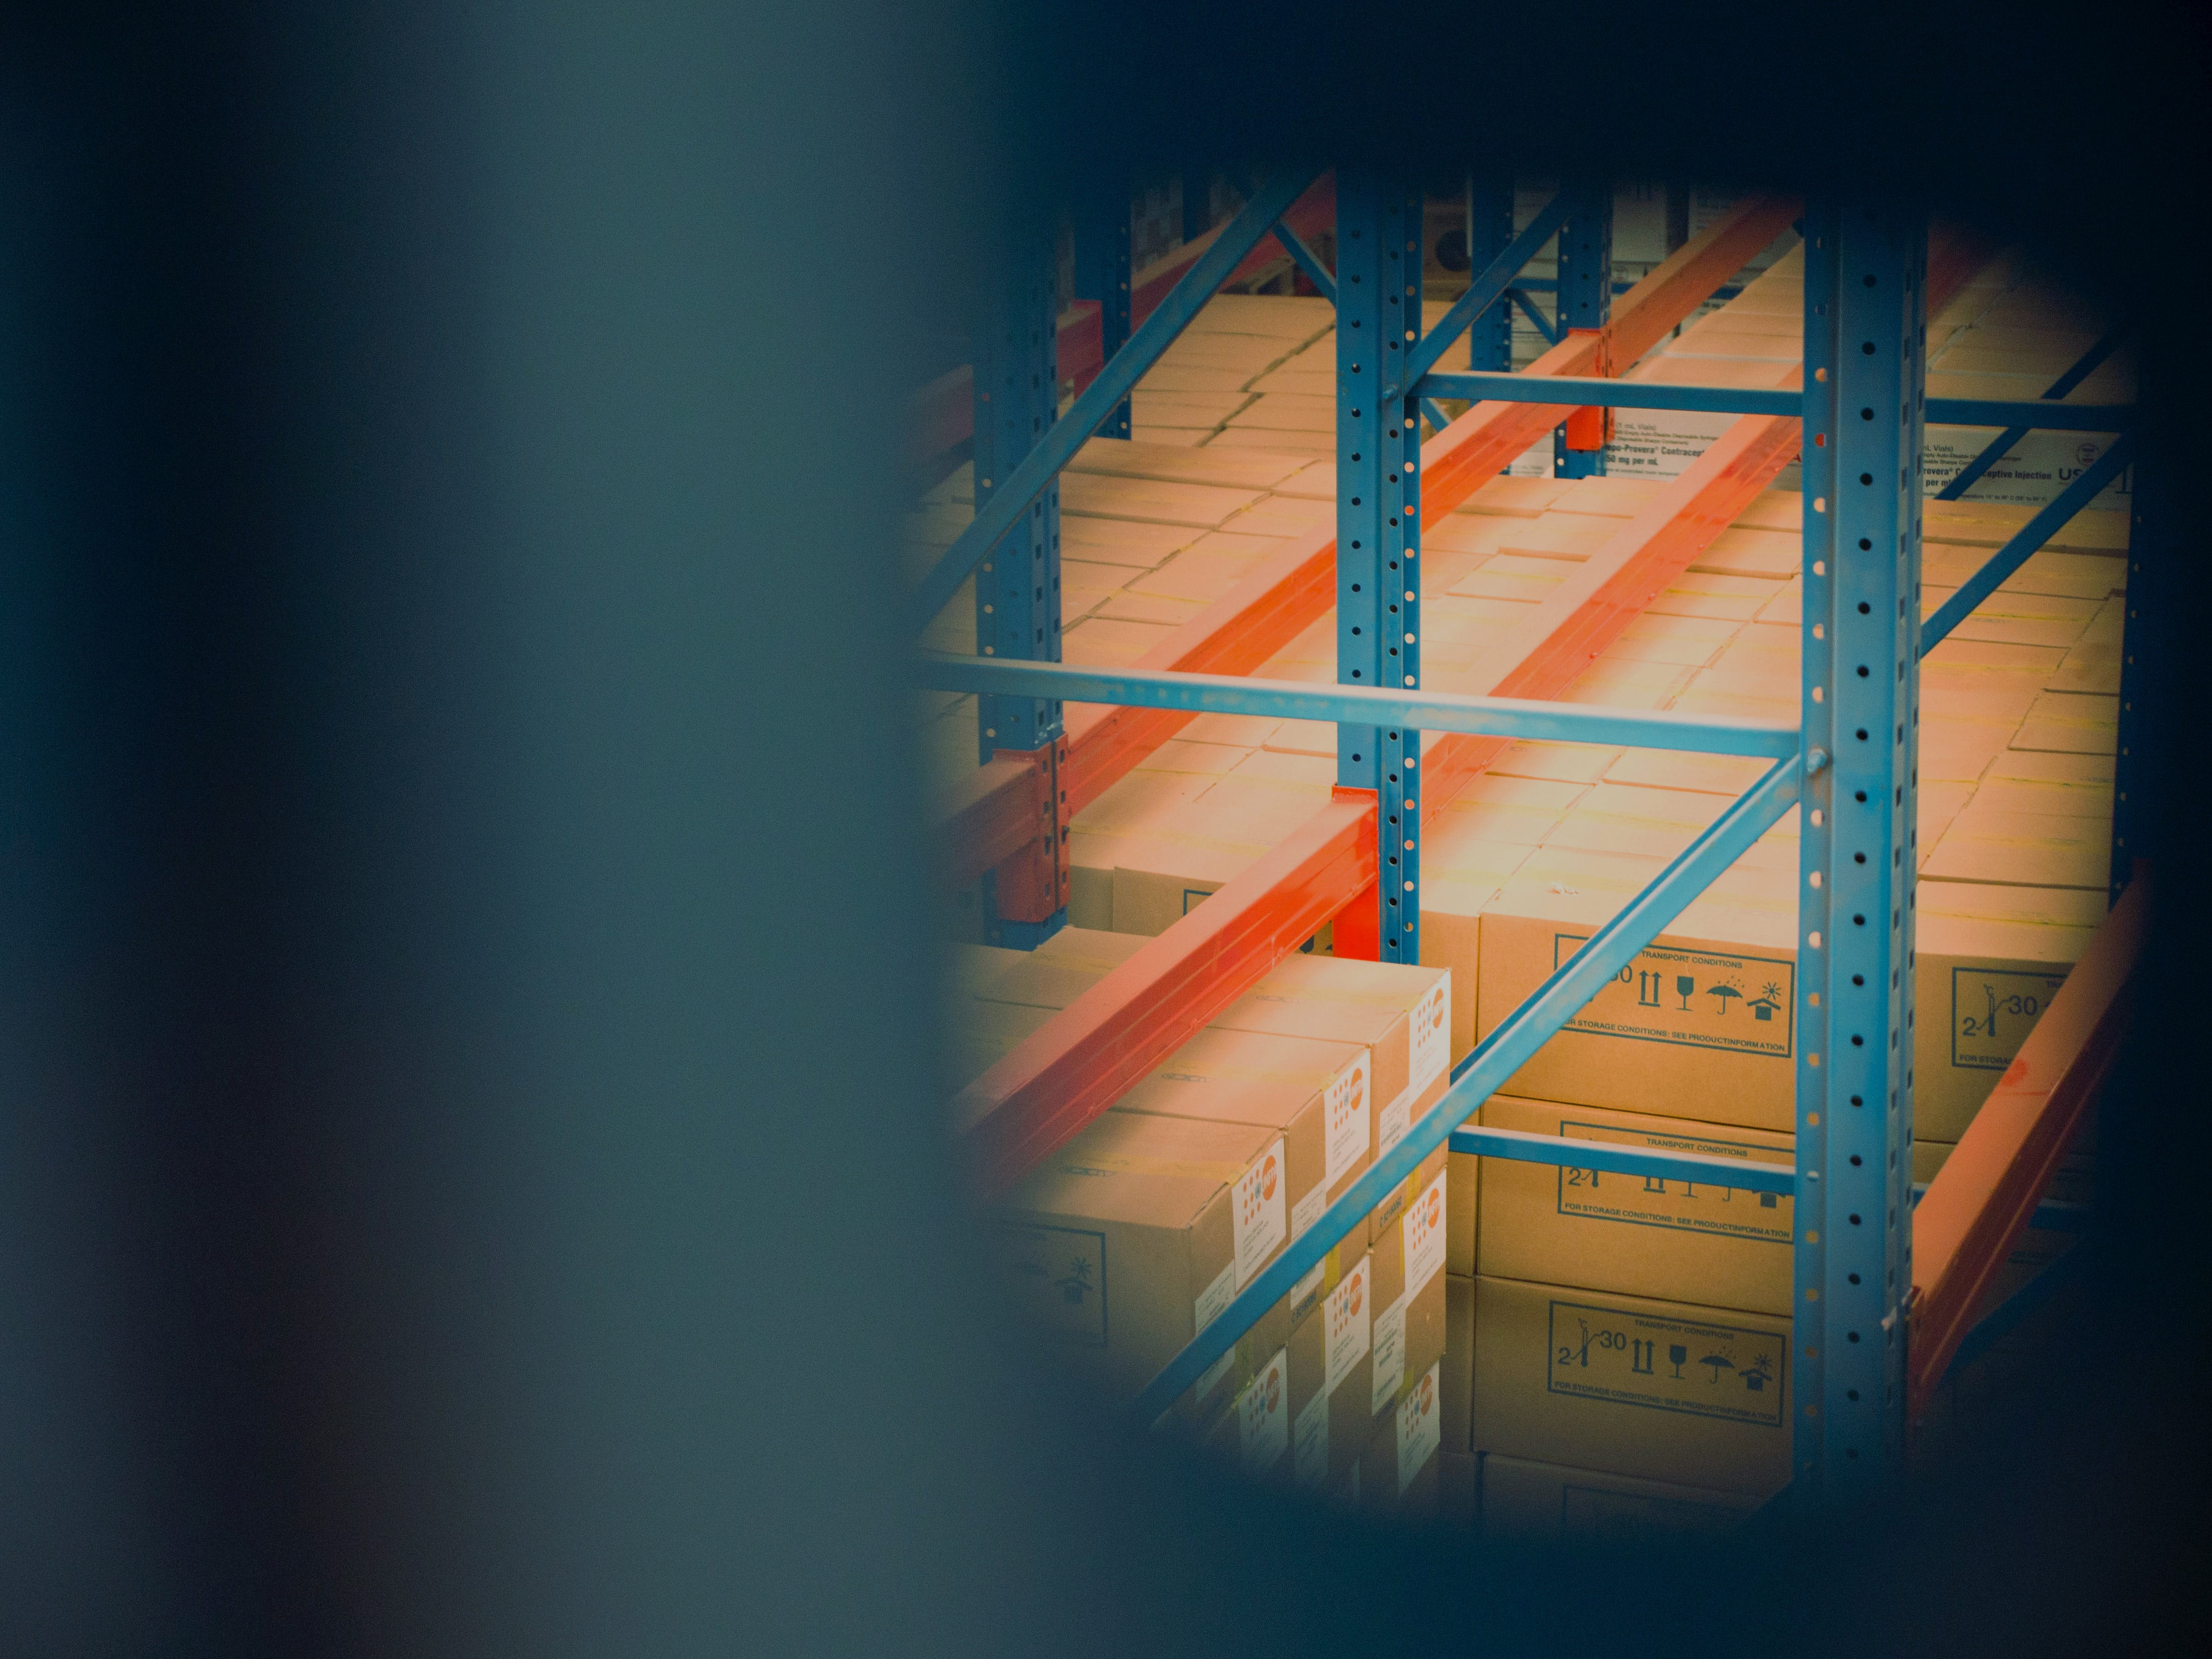 Image of a warehouse with boxes.